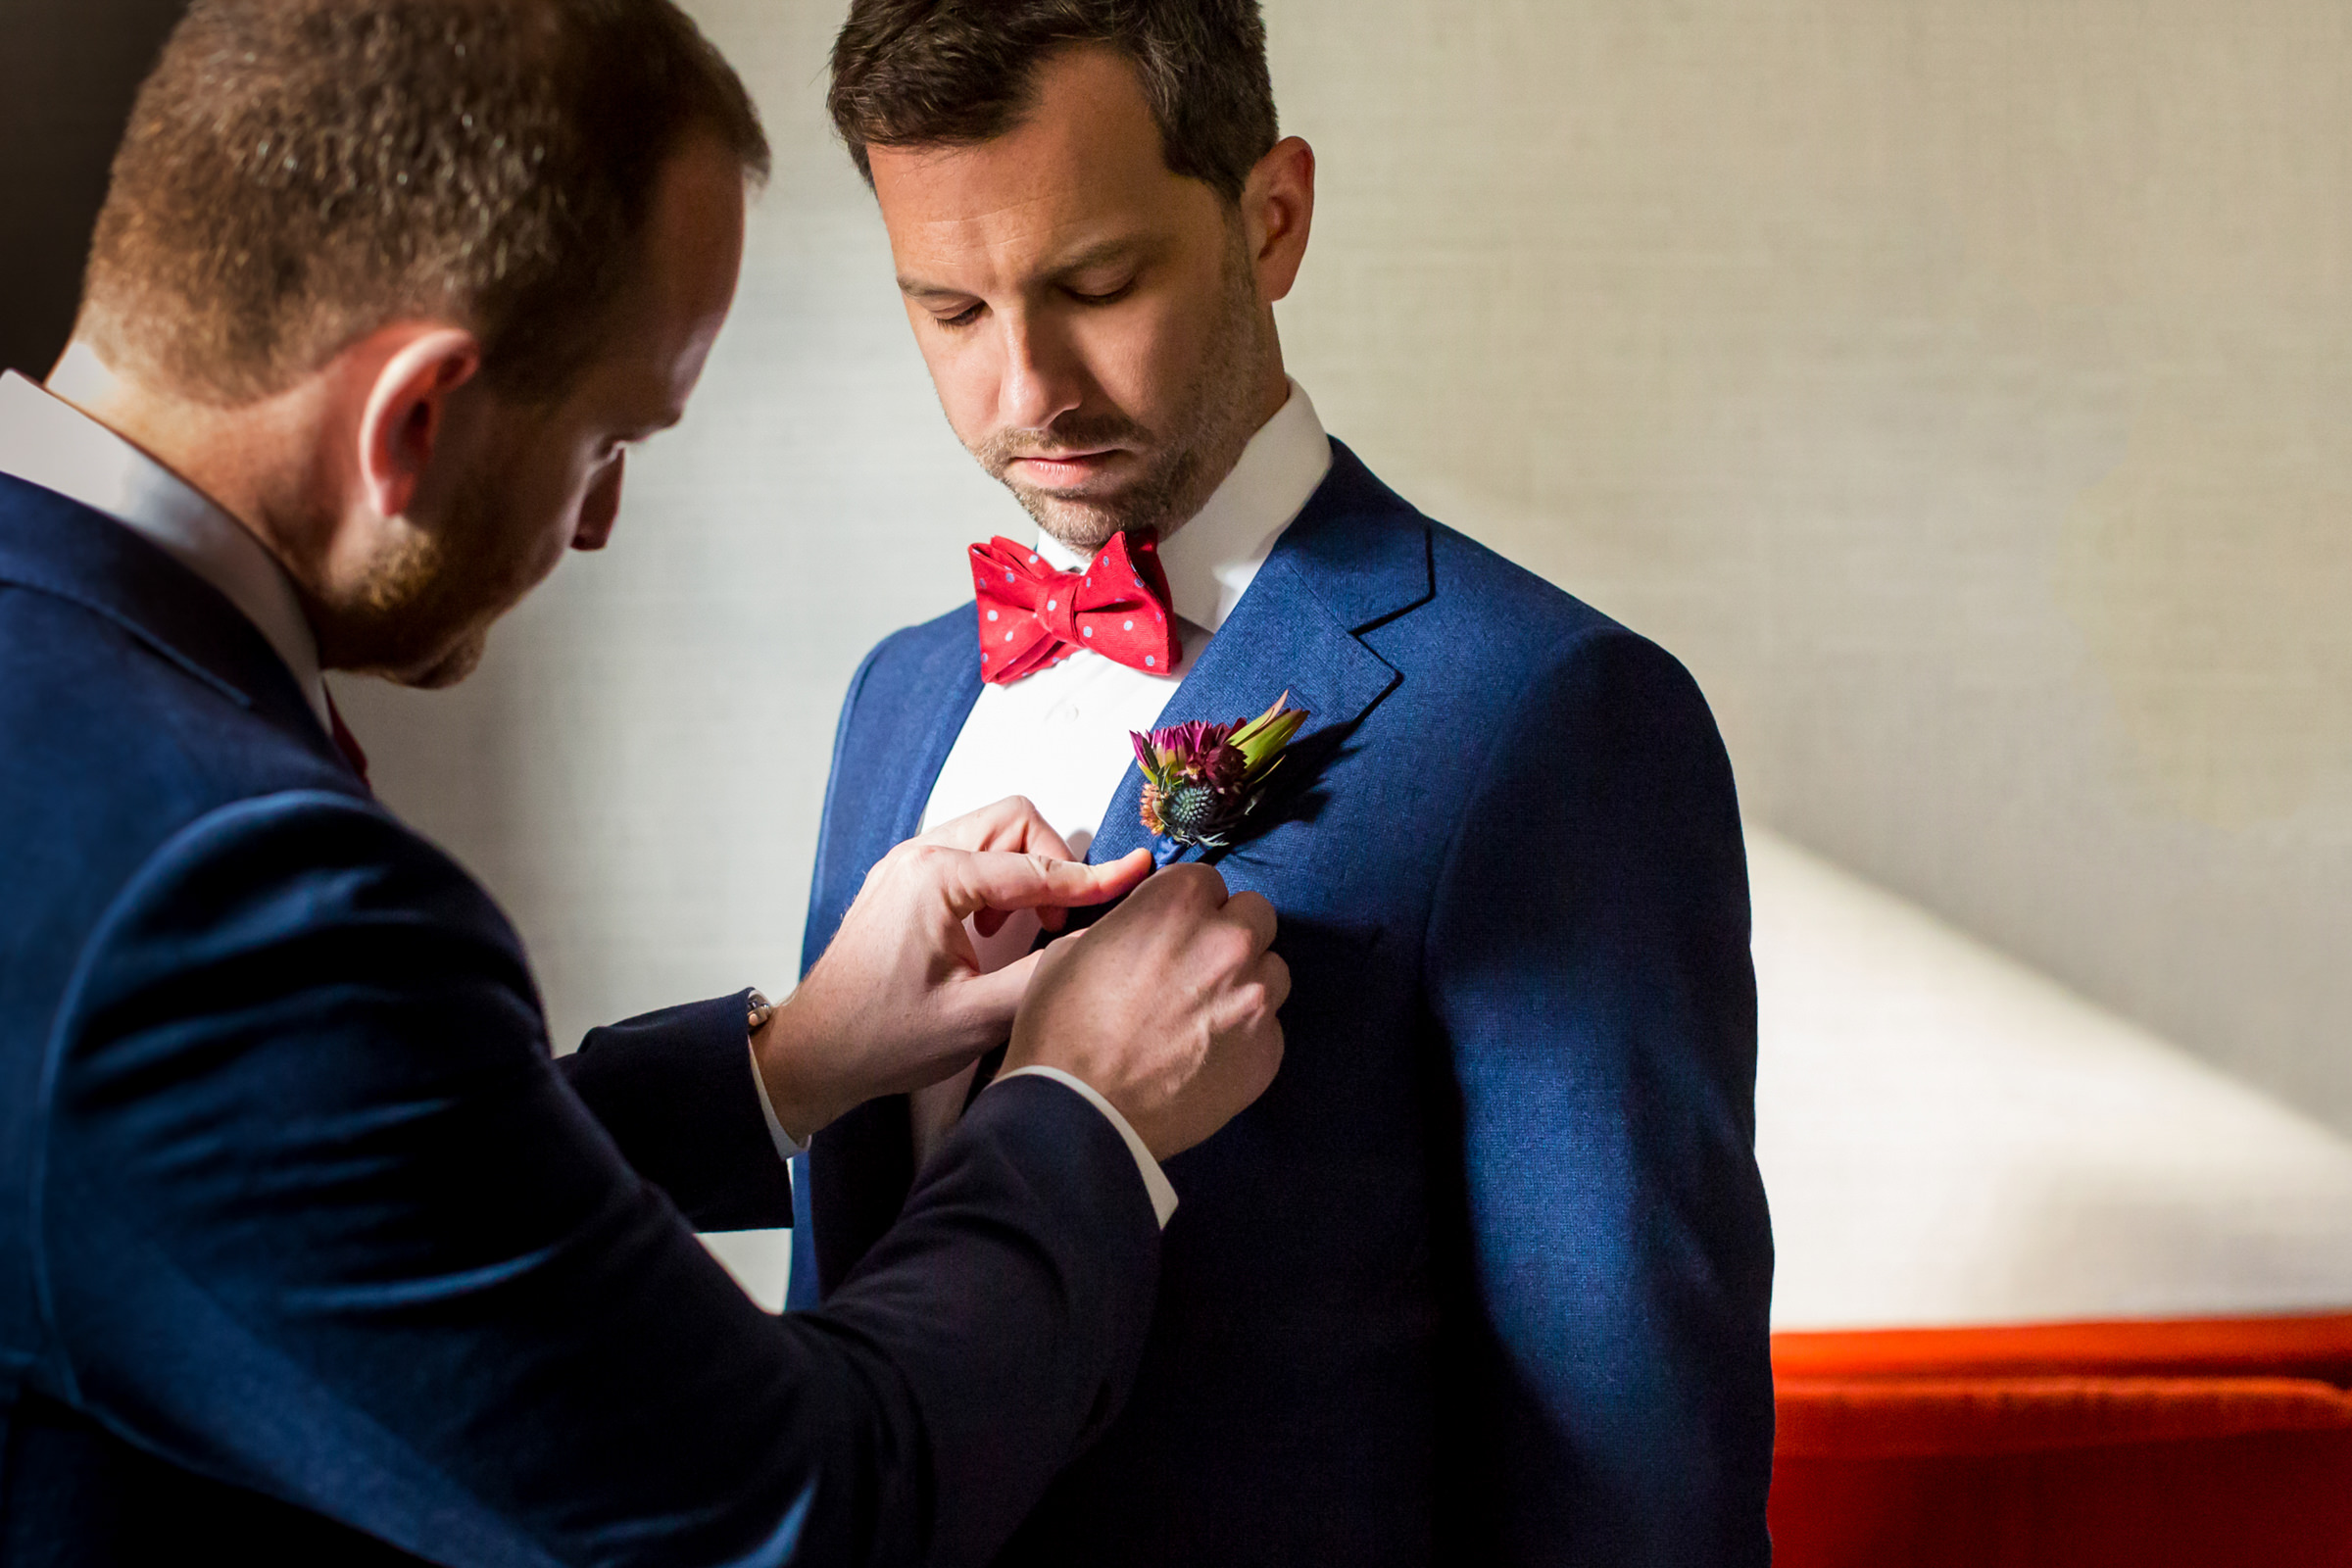 Grooms pinning boutonnieres - photo by Procopio Photography